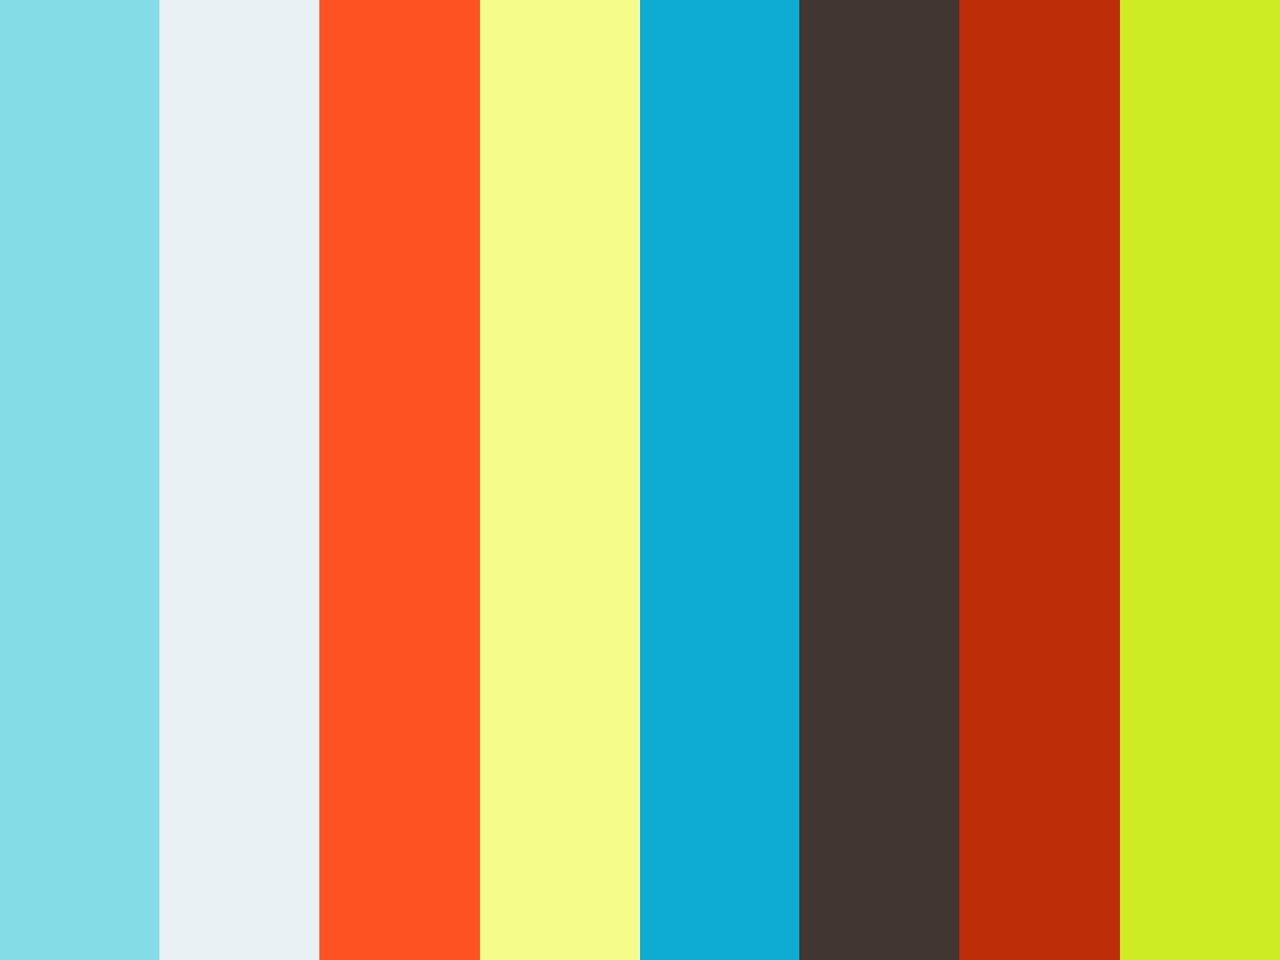 They Might Be Giants 1/5